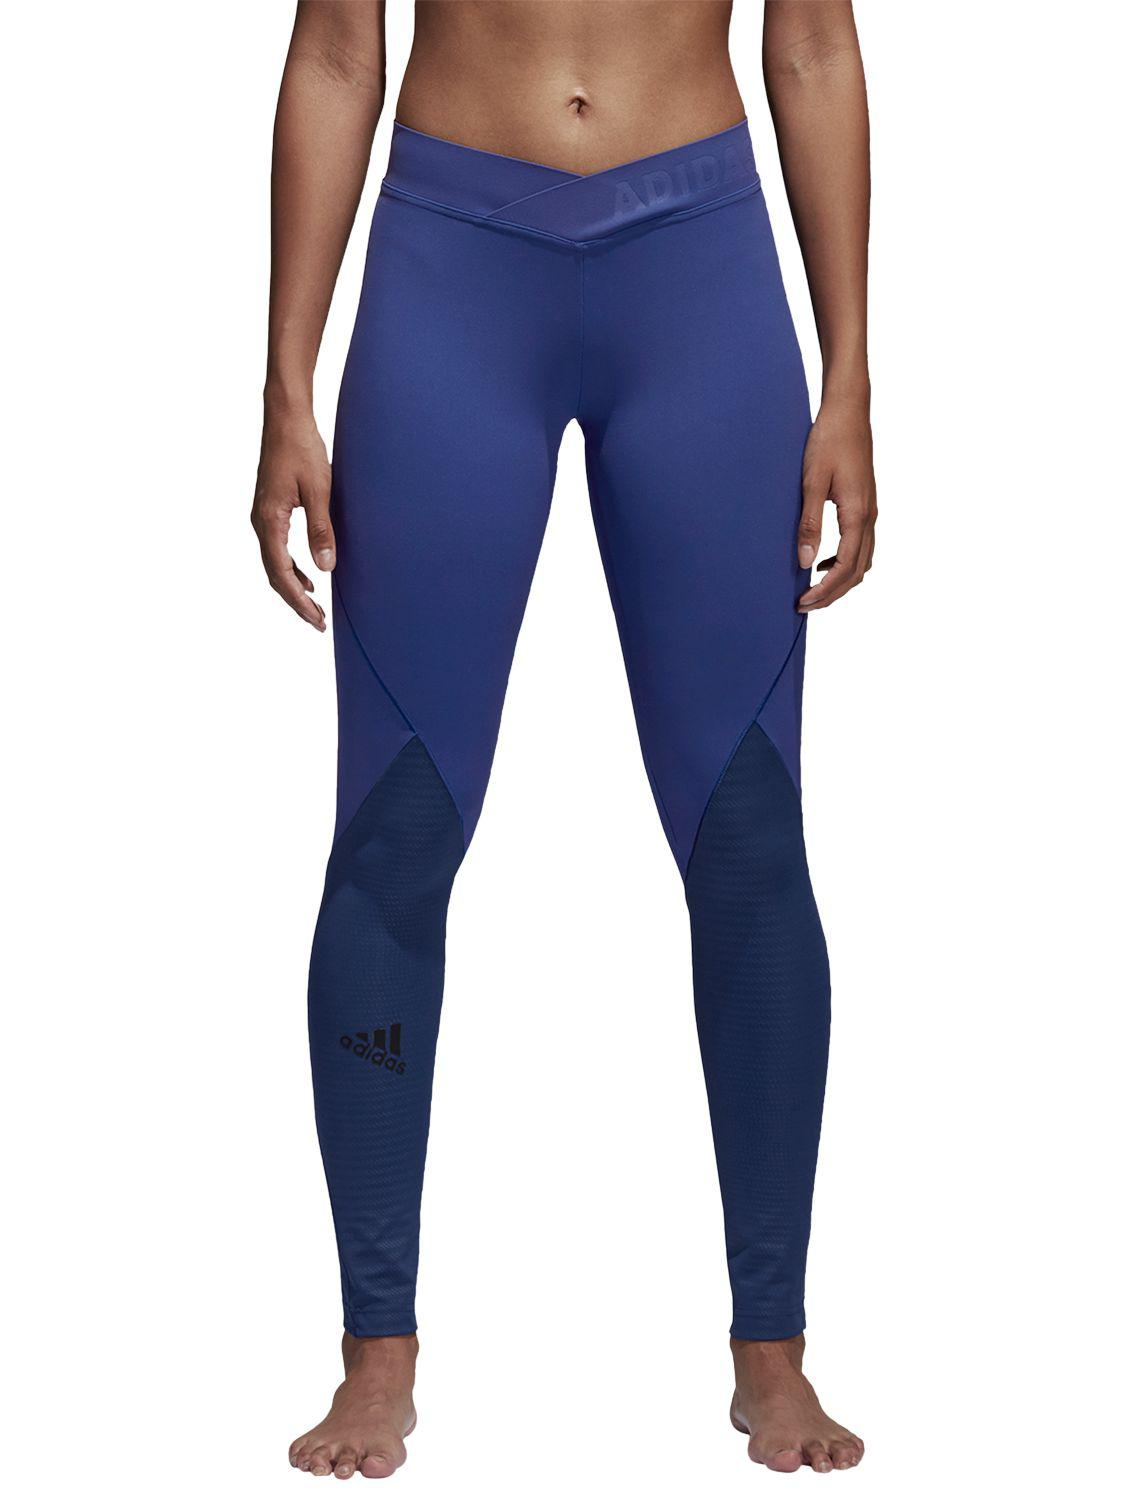 Medias 19998 Adidas Tech de entrenamiento Adidas Ask Tech en Blue Lyst 4560e41 - itorrent.site